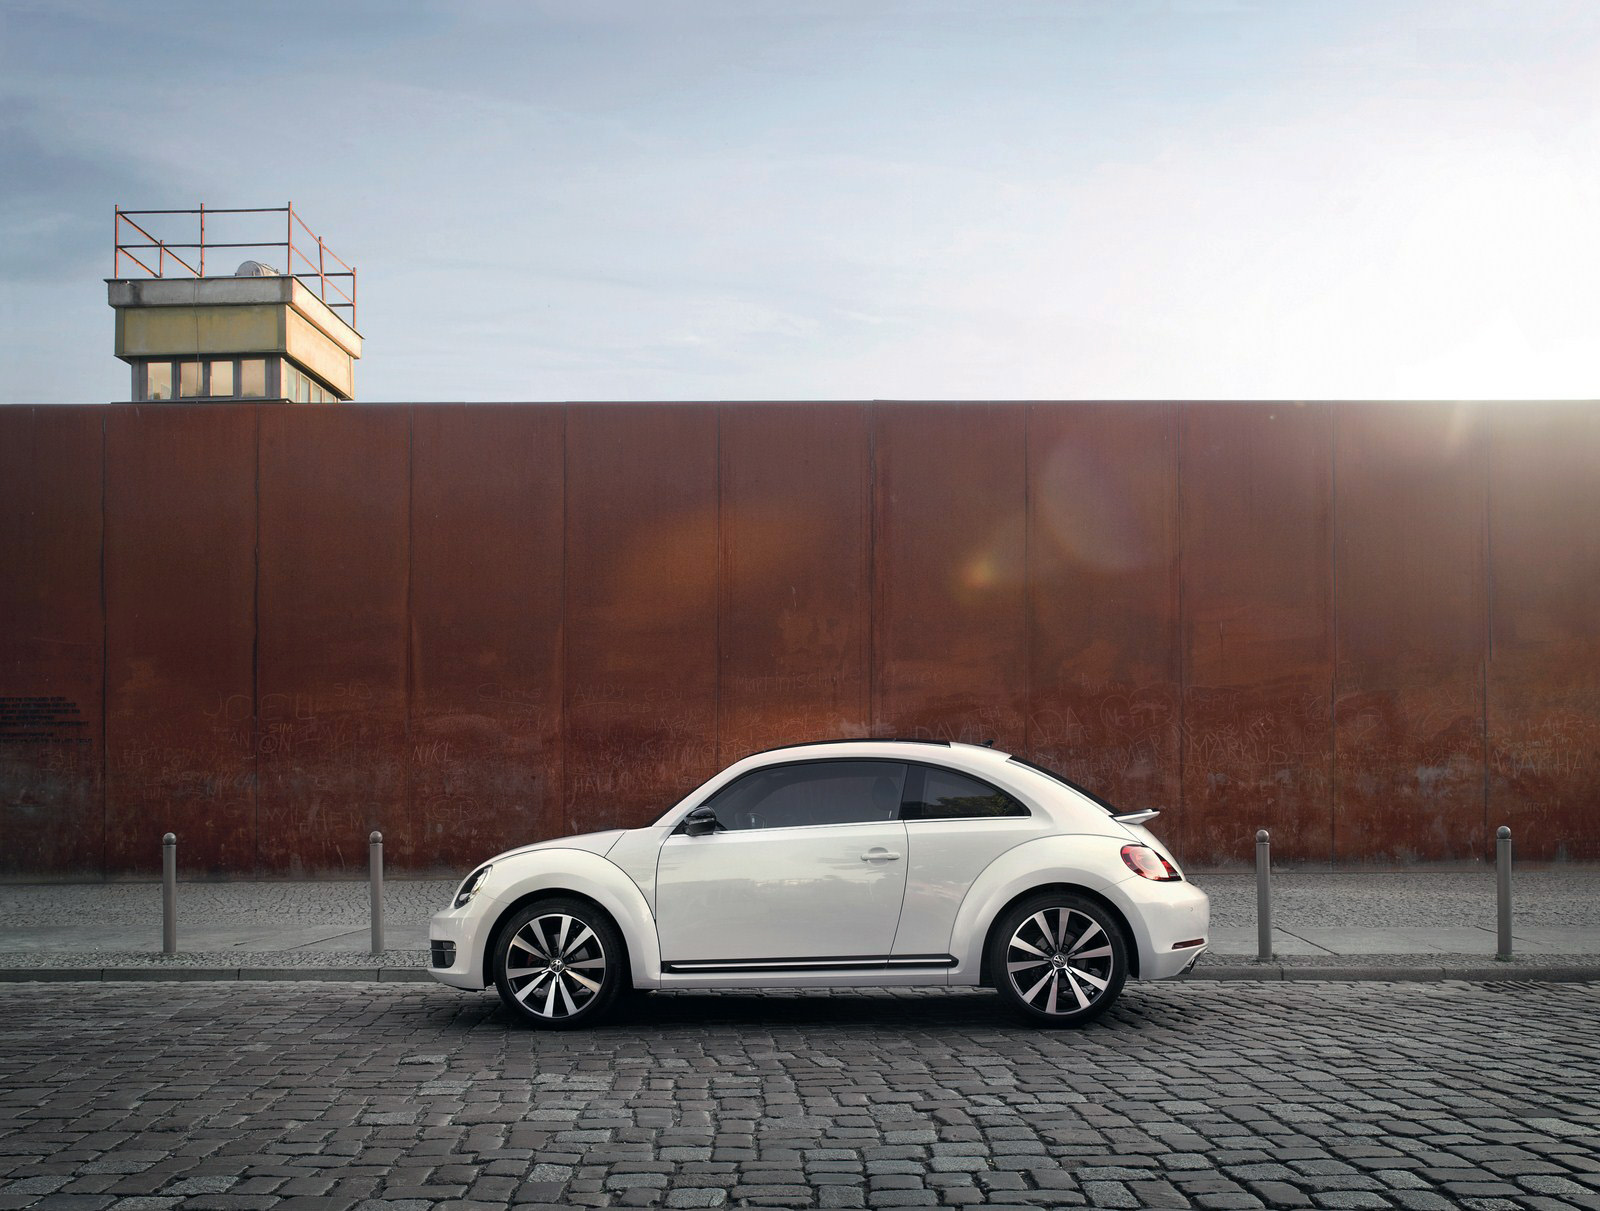 VW Beetle 2012: To the point